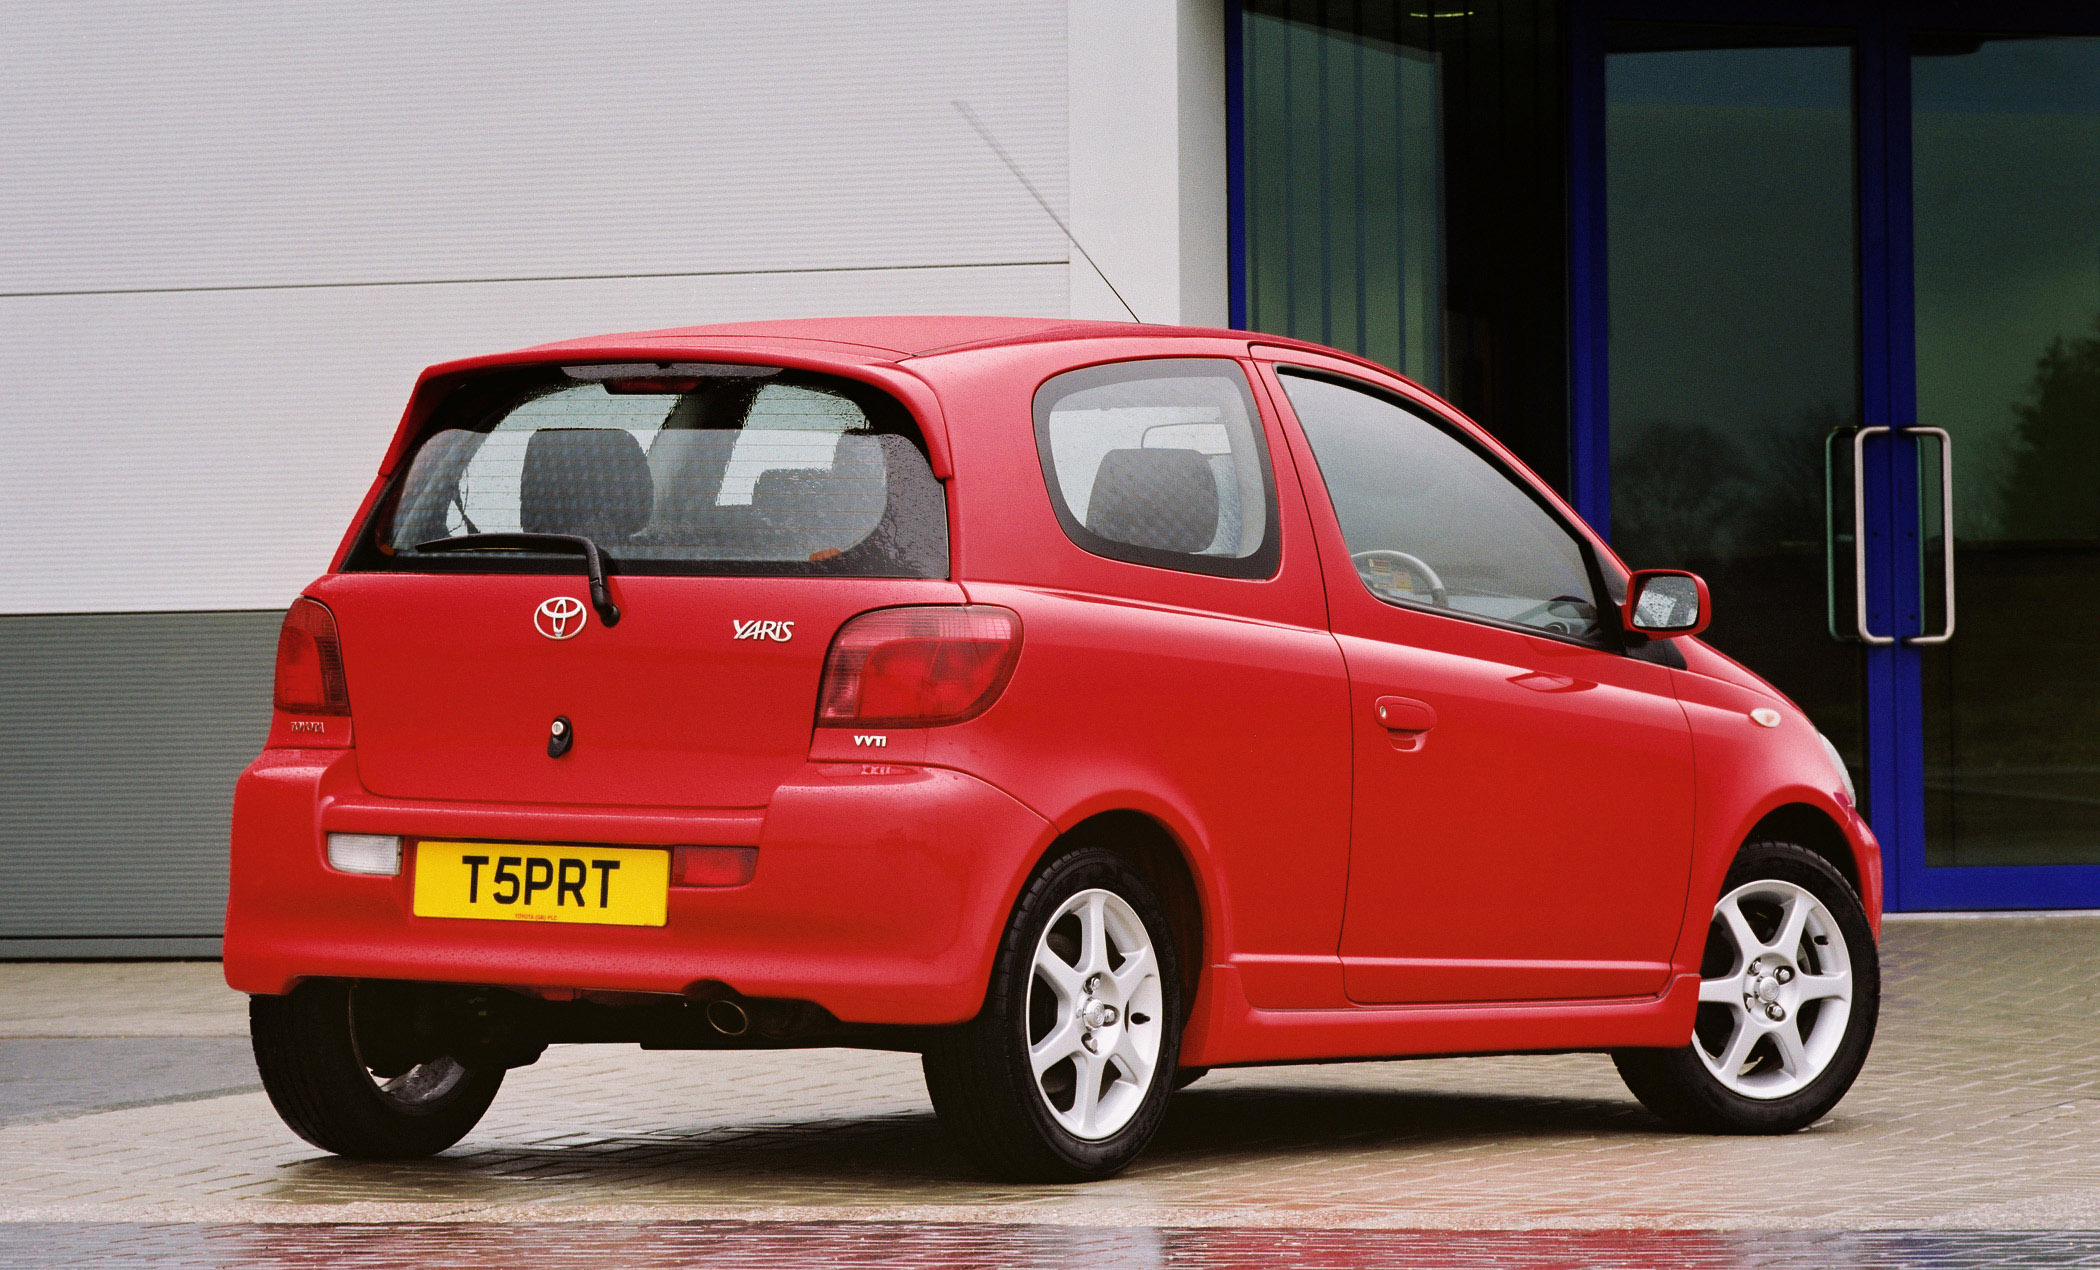 2001 Toyota Yaris T Sport - Picture 76919